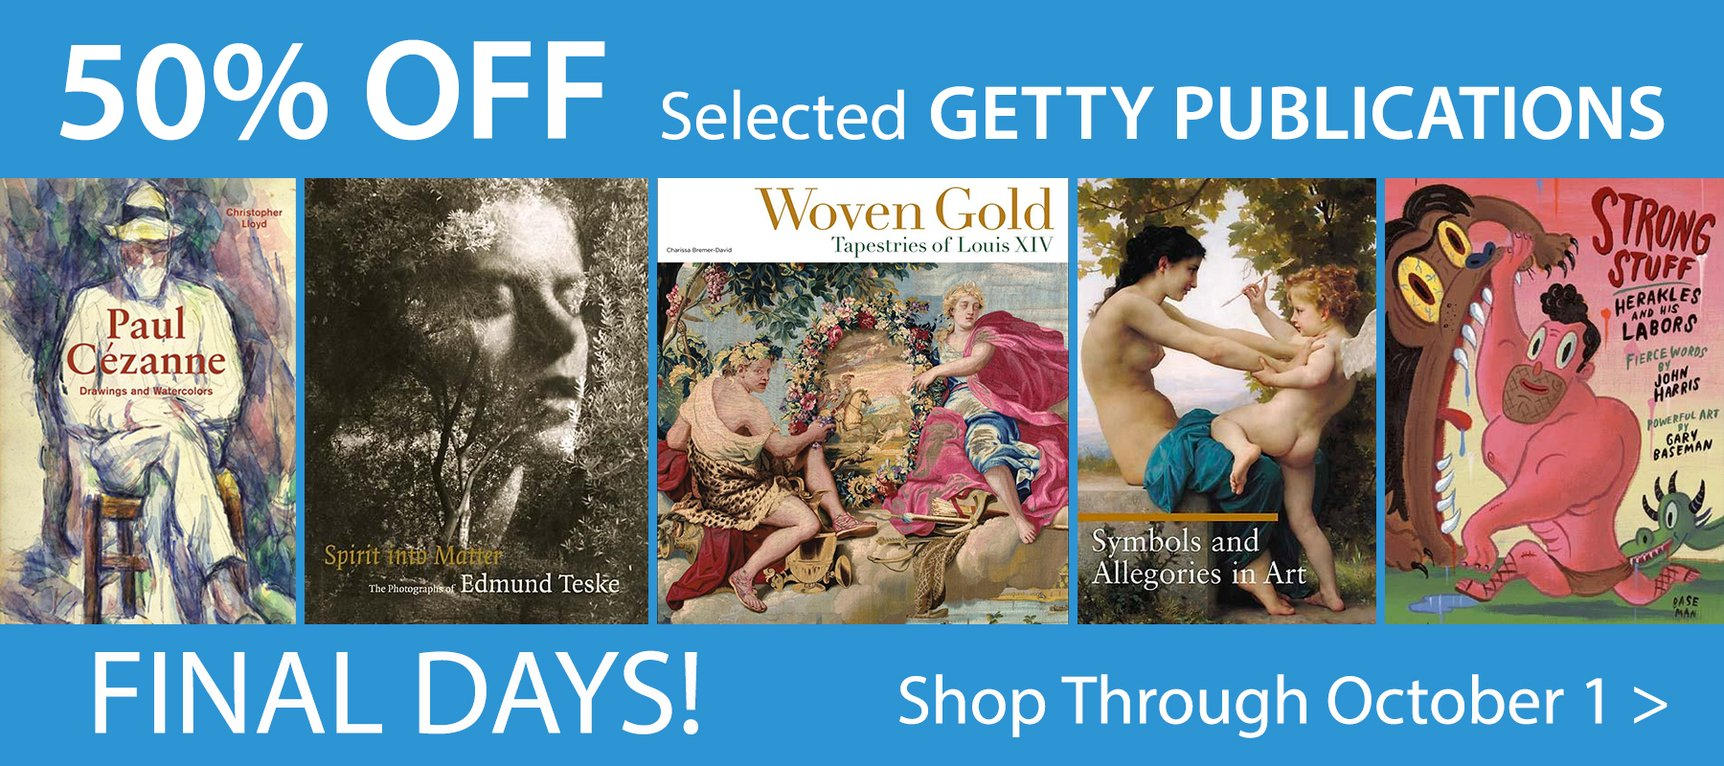 New & Noteworthy Books - 20% Off